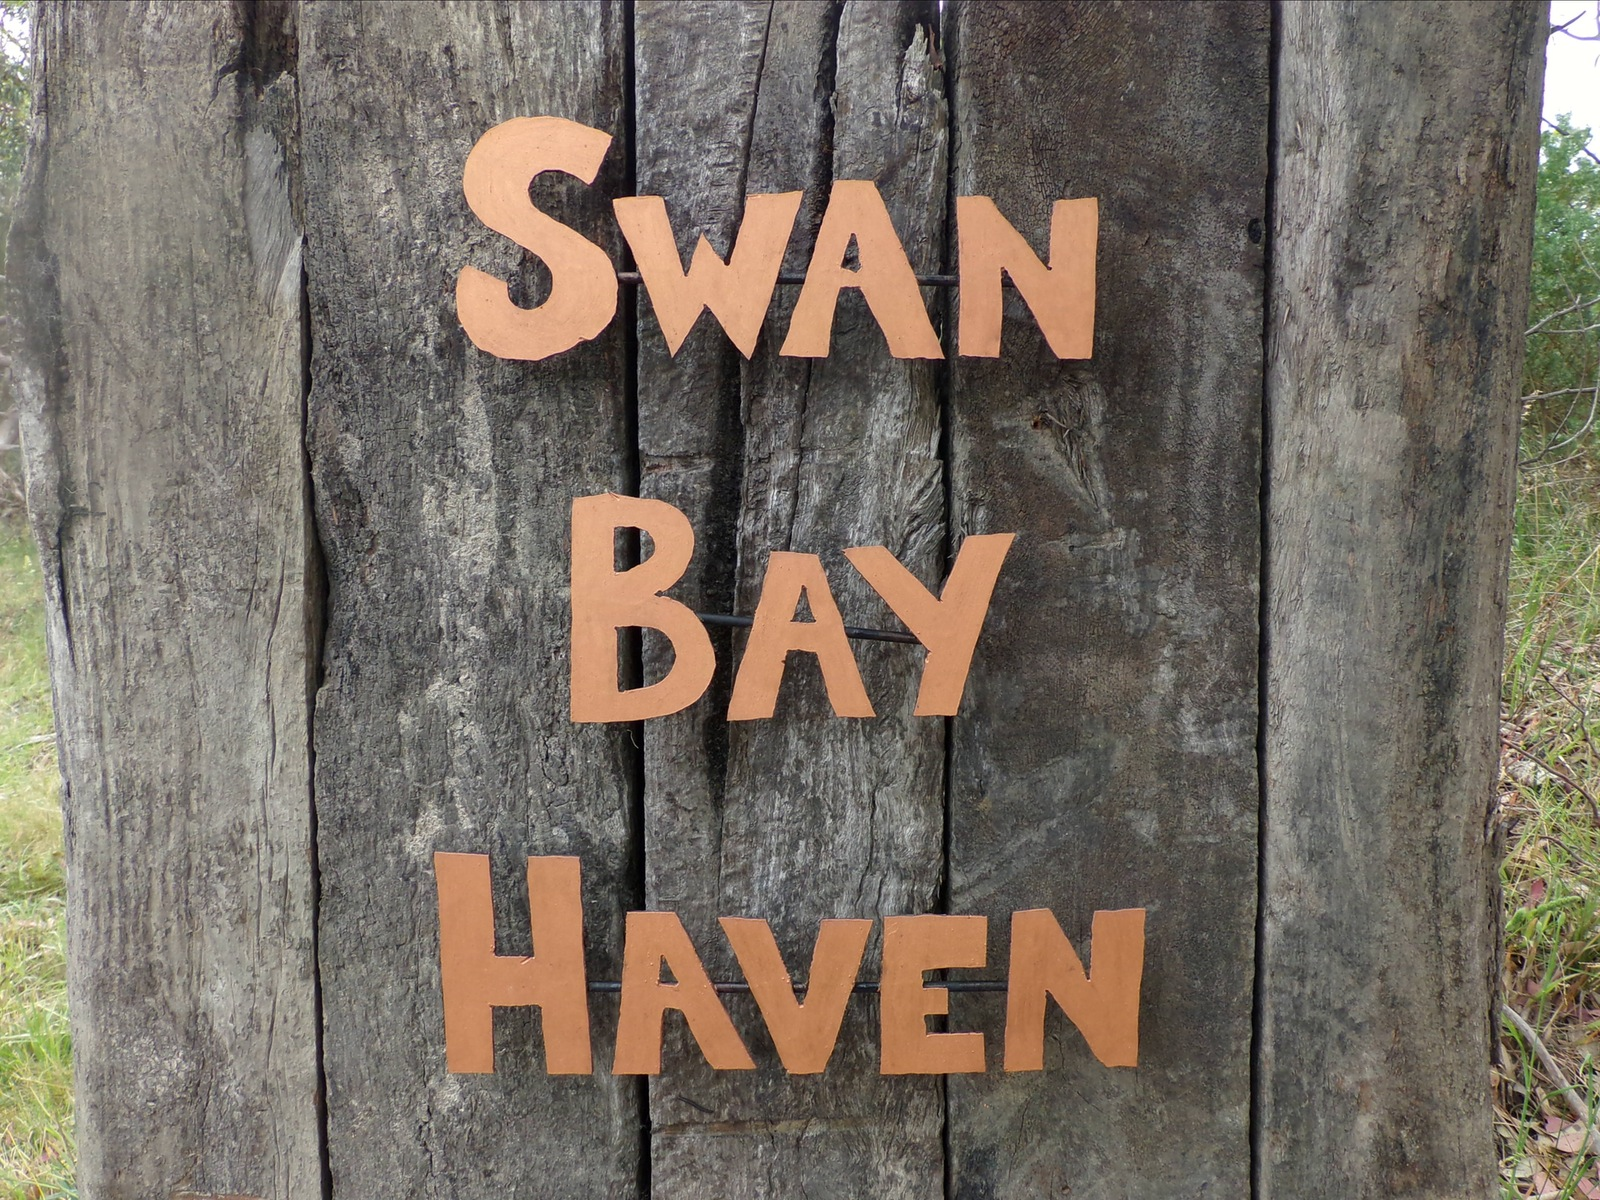 Welcome to Swan Bay Haven